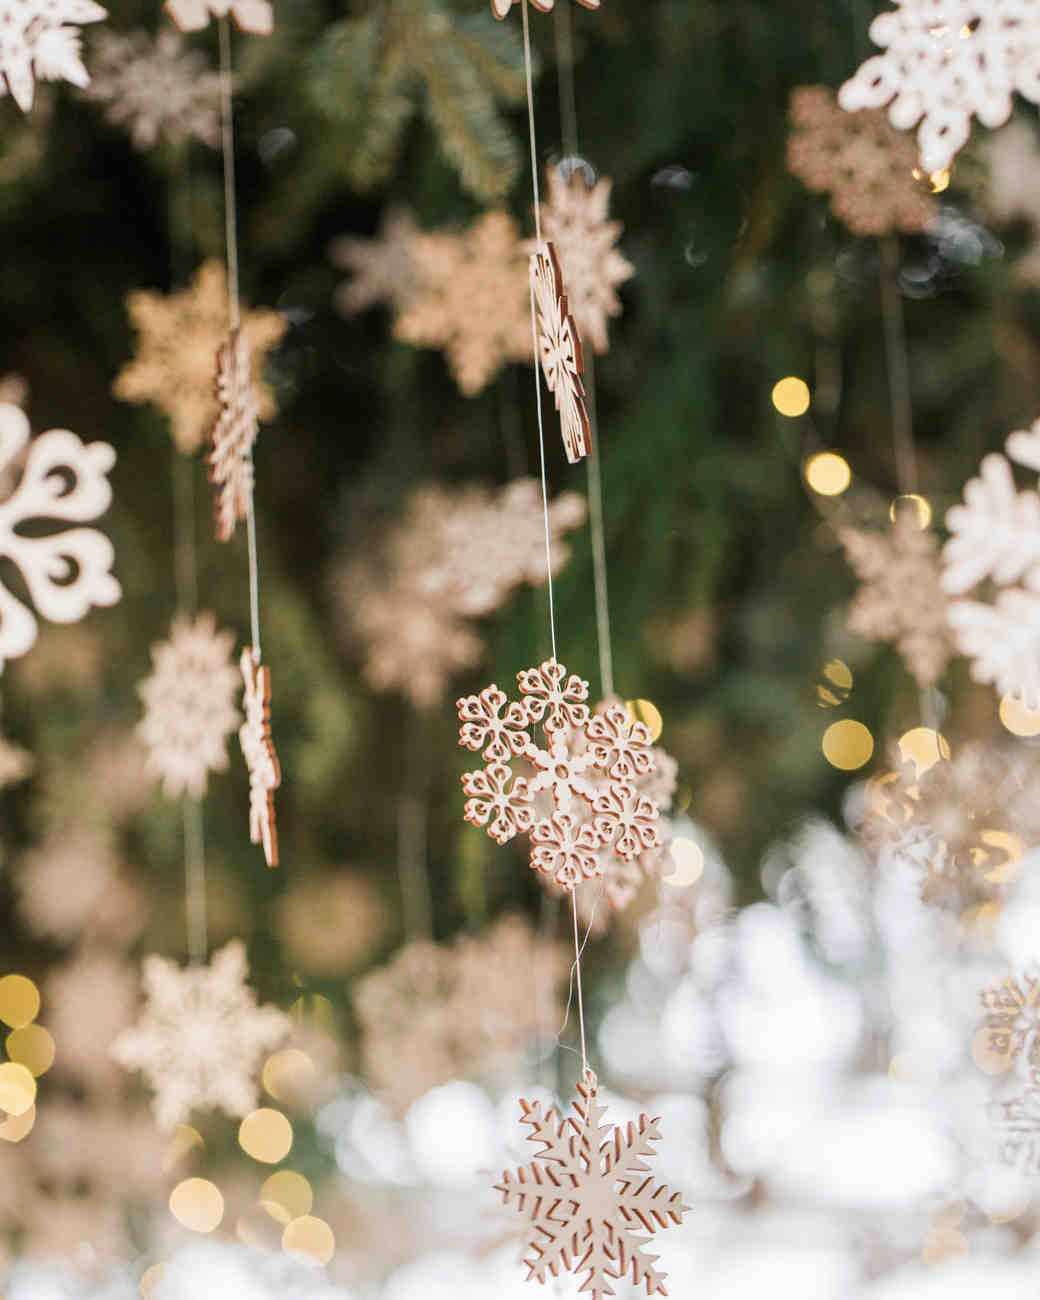 hanging wooden snowflakes and lights over dance floor